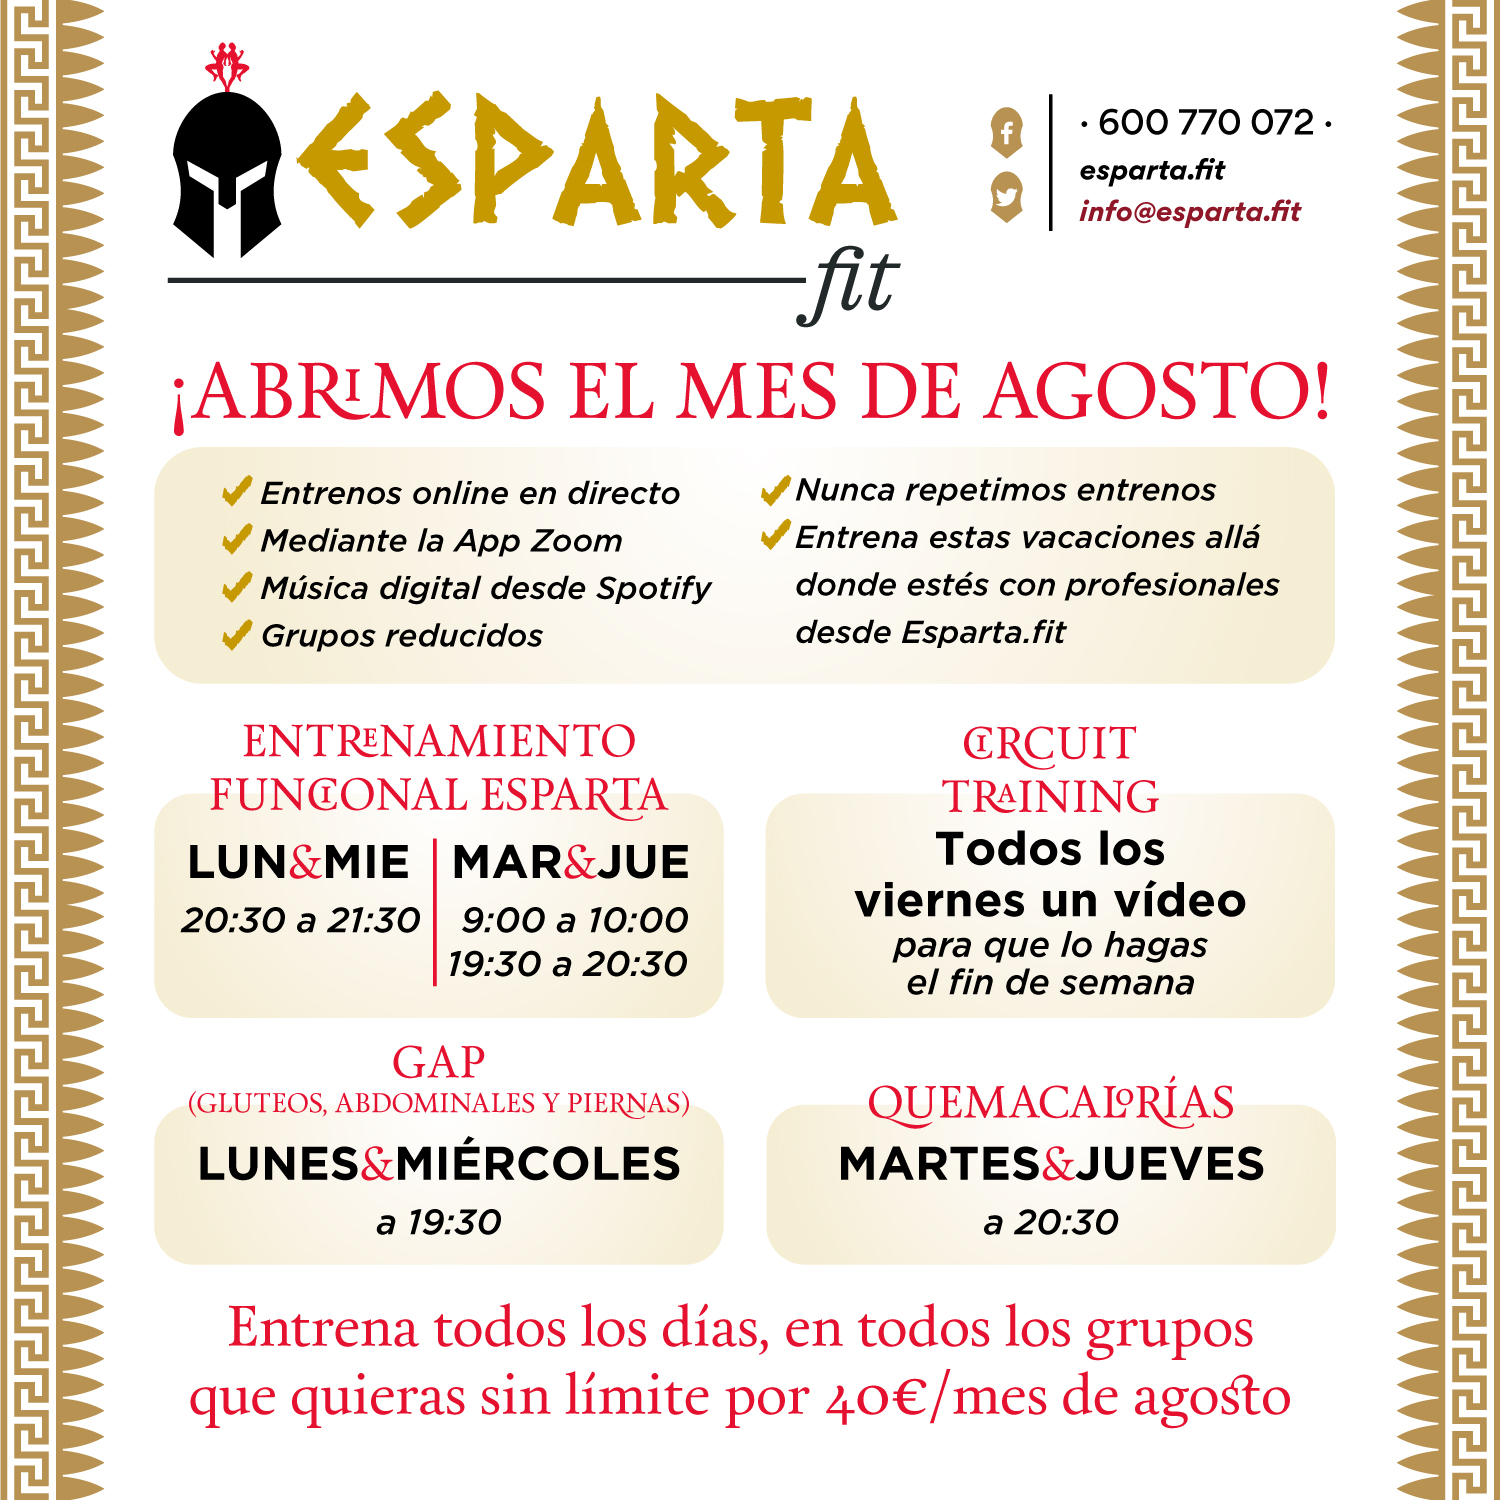 BANNER AGOSTO ESPARTA FIT 27JUL20